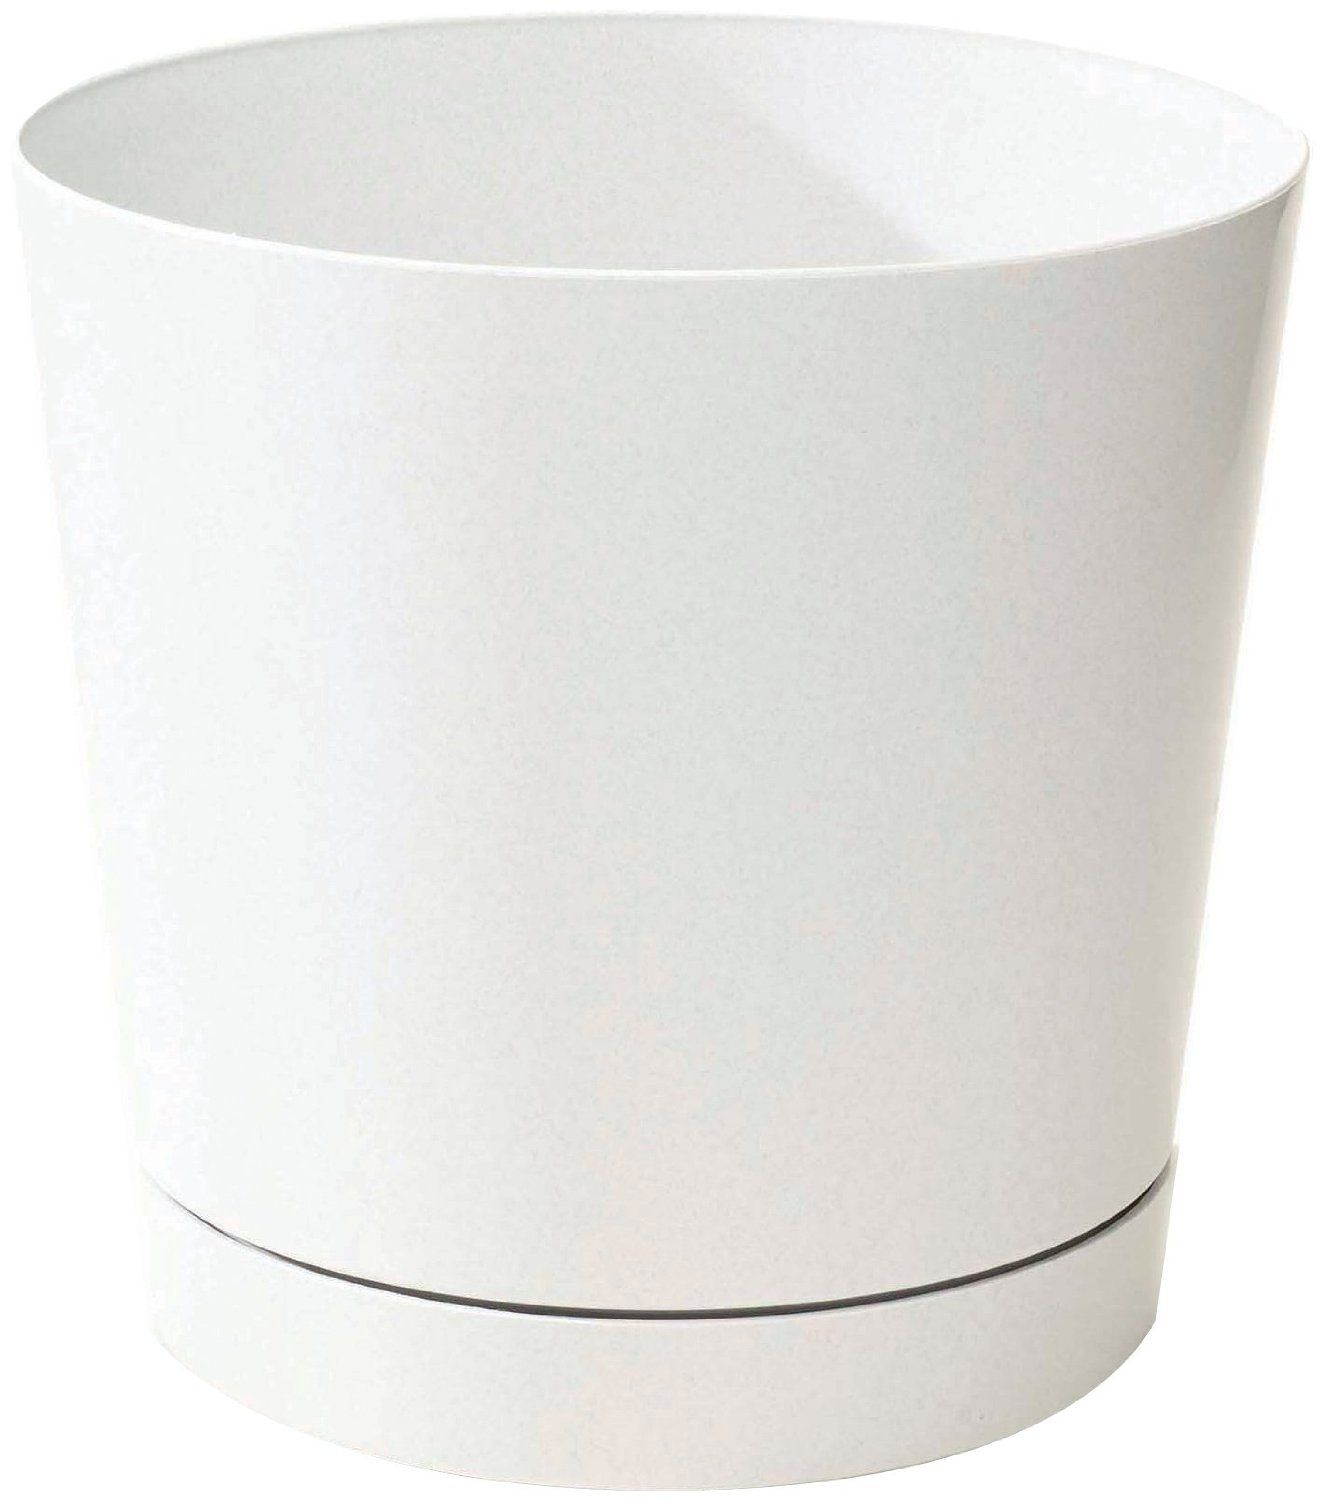 Amazon Com Novelty 10122 Full Depth Round Cylinder Pot White 12 Inch Patio Lawn Garden White Planters Outdoor Planter Designs Contemporary Planters